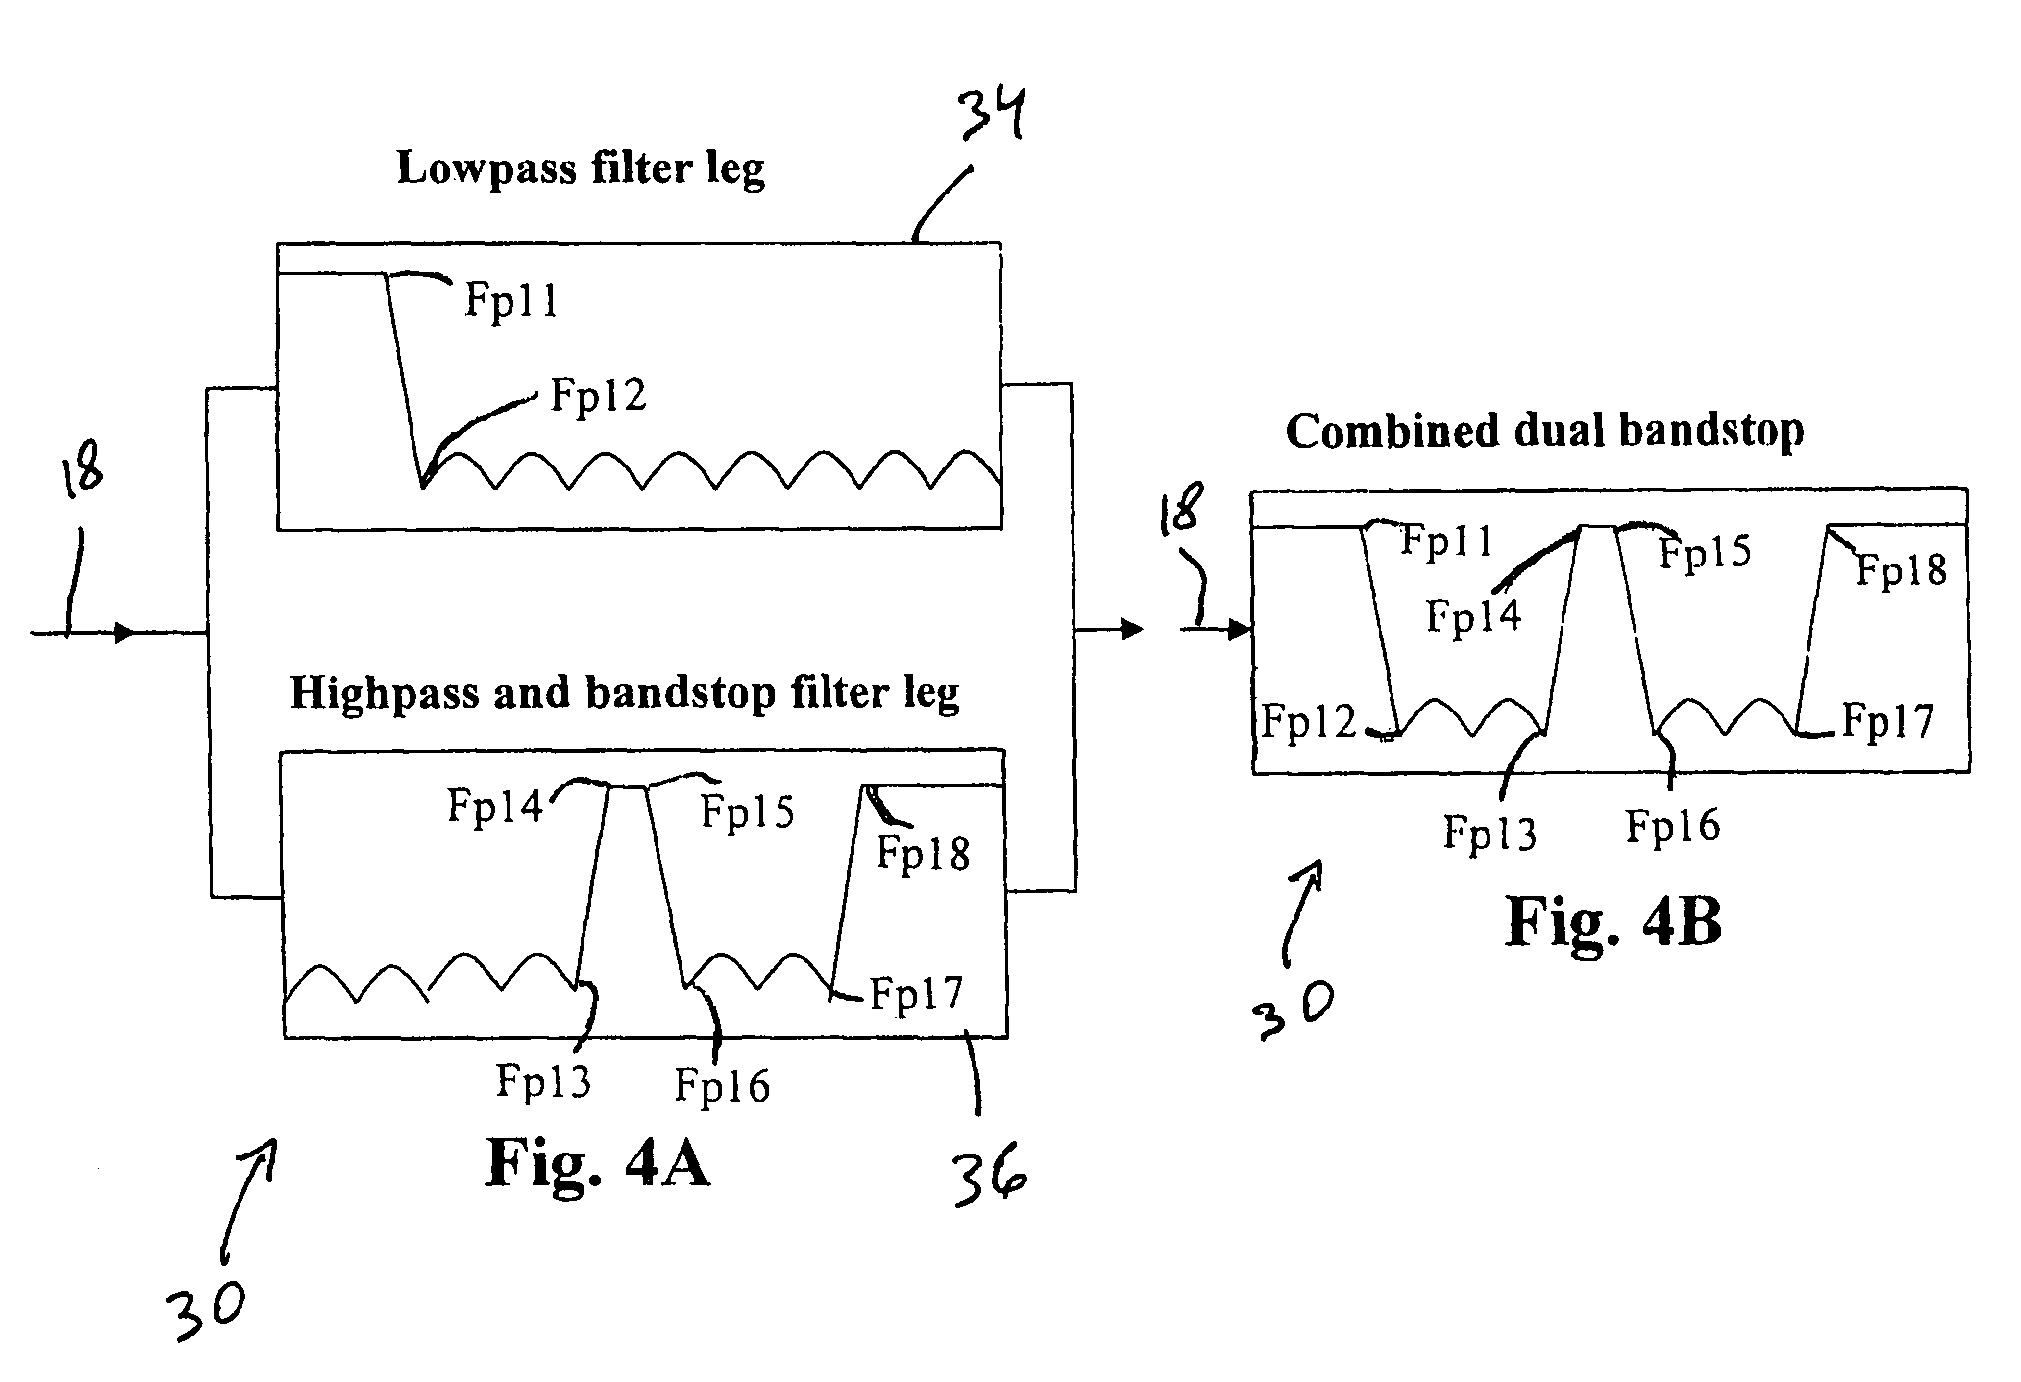 Patent Us7592882 Dual Bandstop Filter With Enhanced Upper Passband How To Troubleshoot This Circuit Electrical Drawing